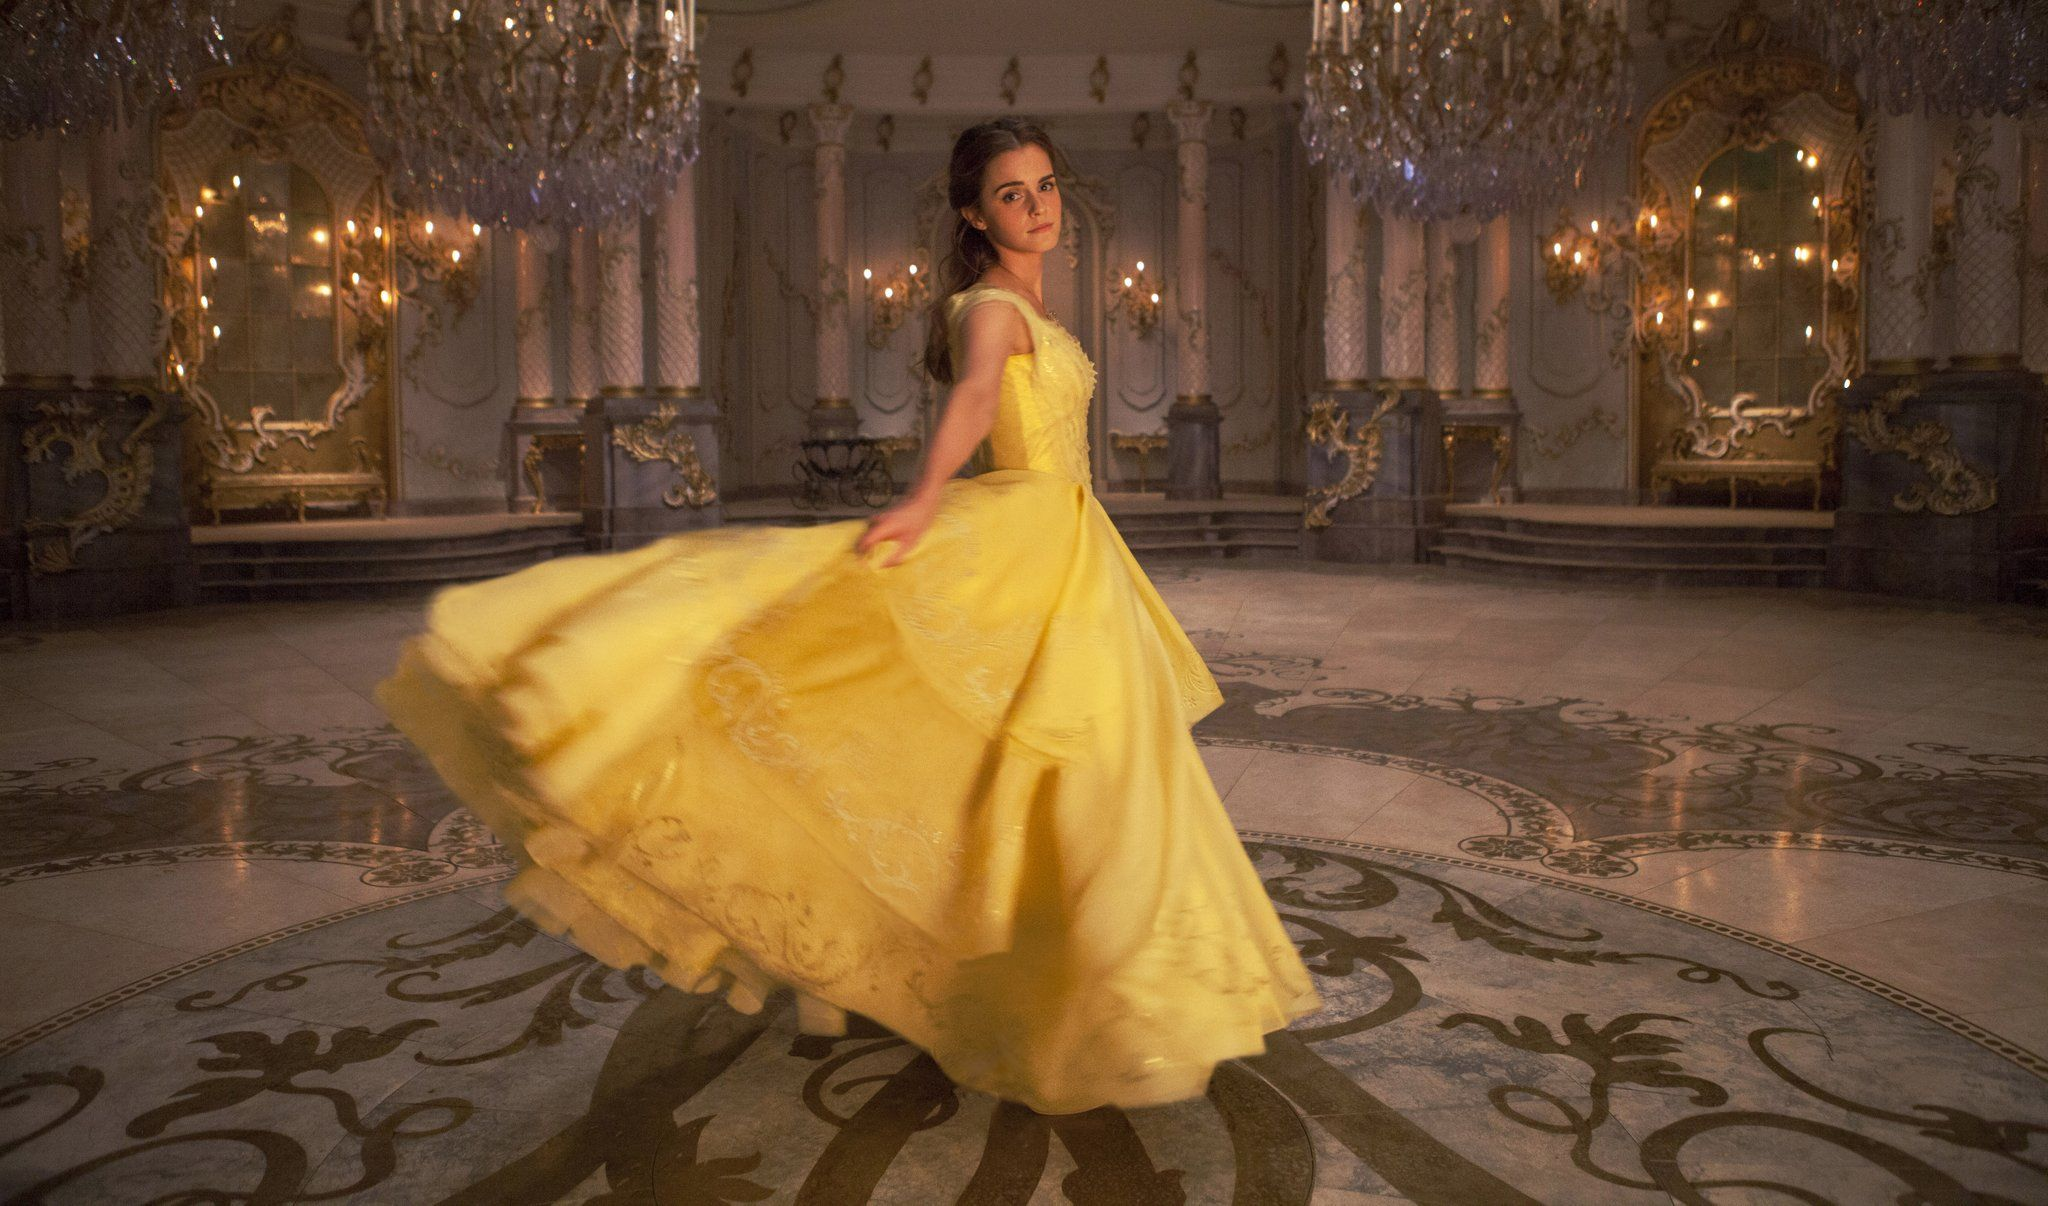 beauty and the beast 2017 free download